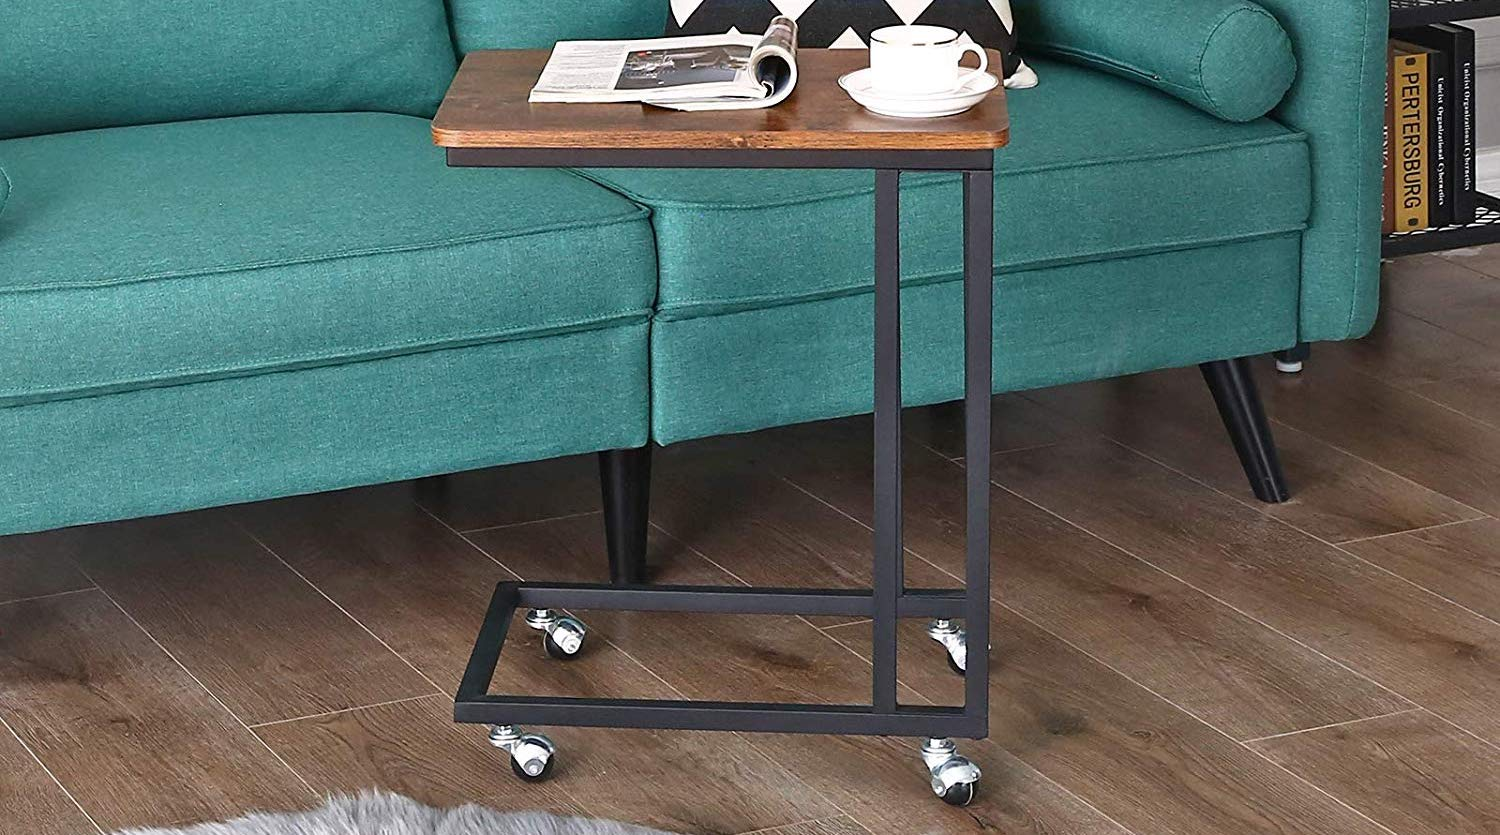 Sensational Top 10 Best C Shaped Tables In 2019 Reviews Buyers Guide Pabps2019 Chair Design Images Pabps2019Com